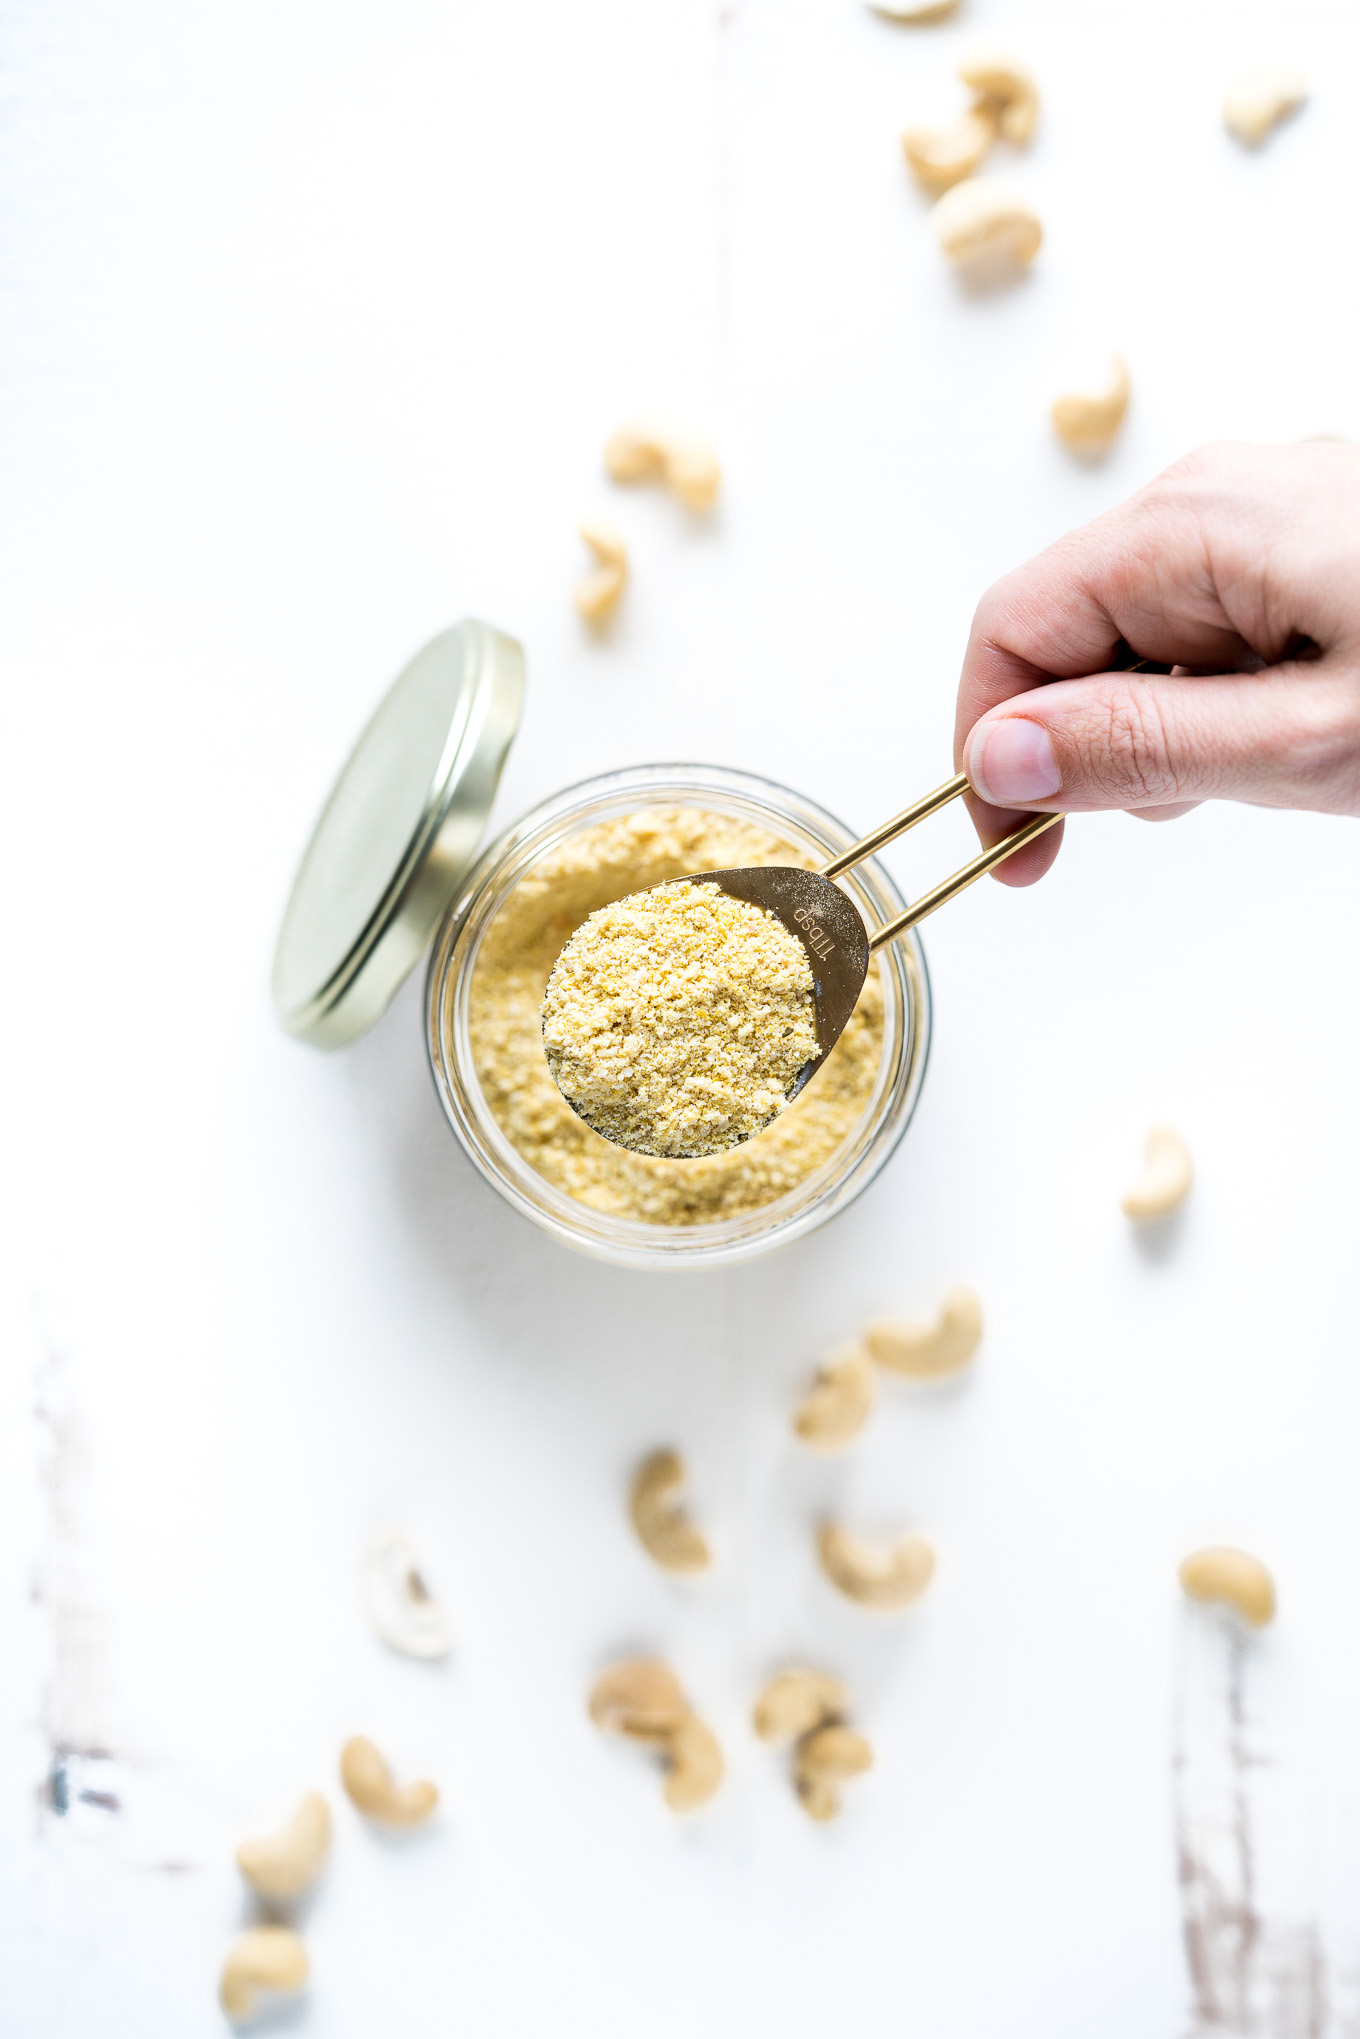 Vegan Parmesan Cheese Spoon Out of Jar